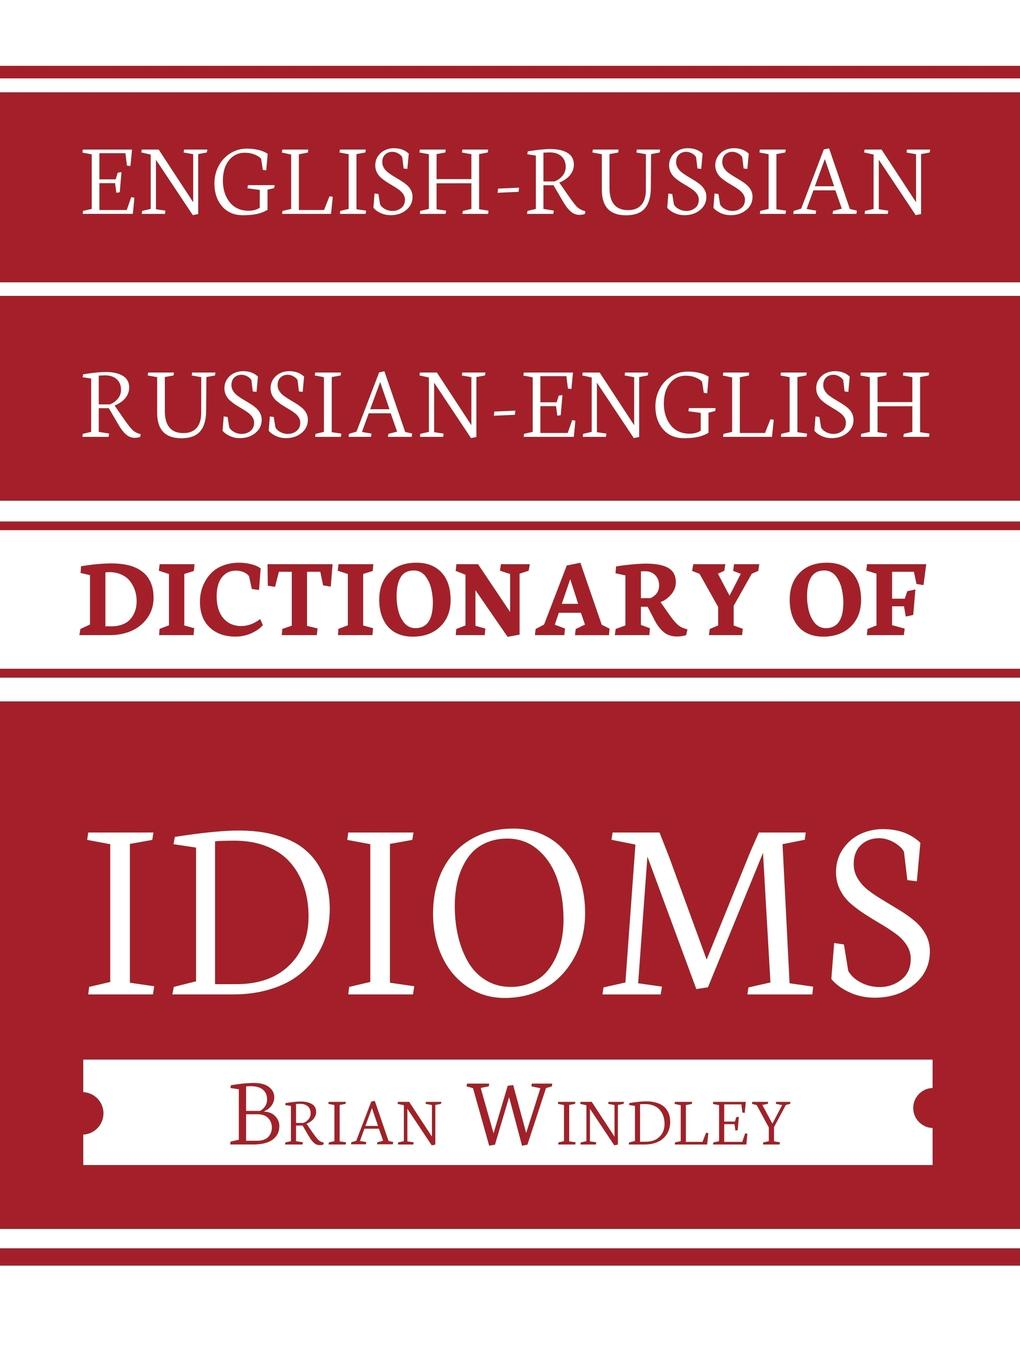 Brian Windley English-Russian/Russian-English Dictionary of Idioms